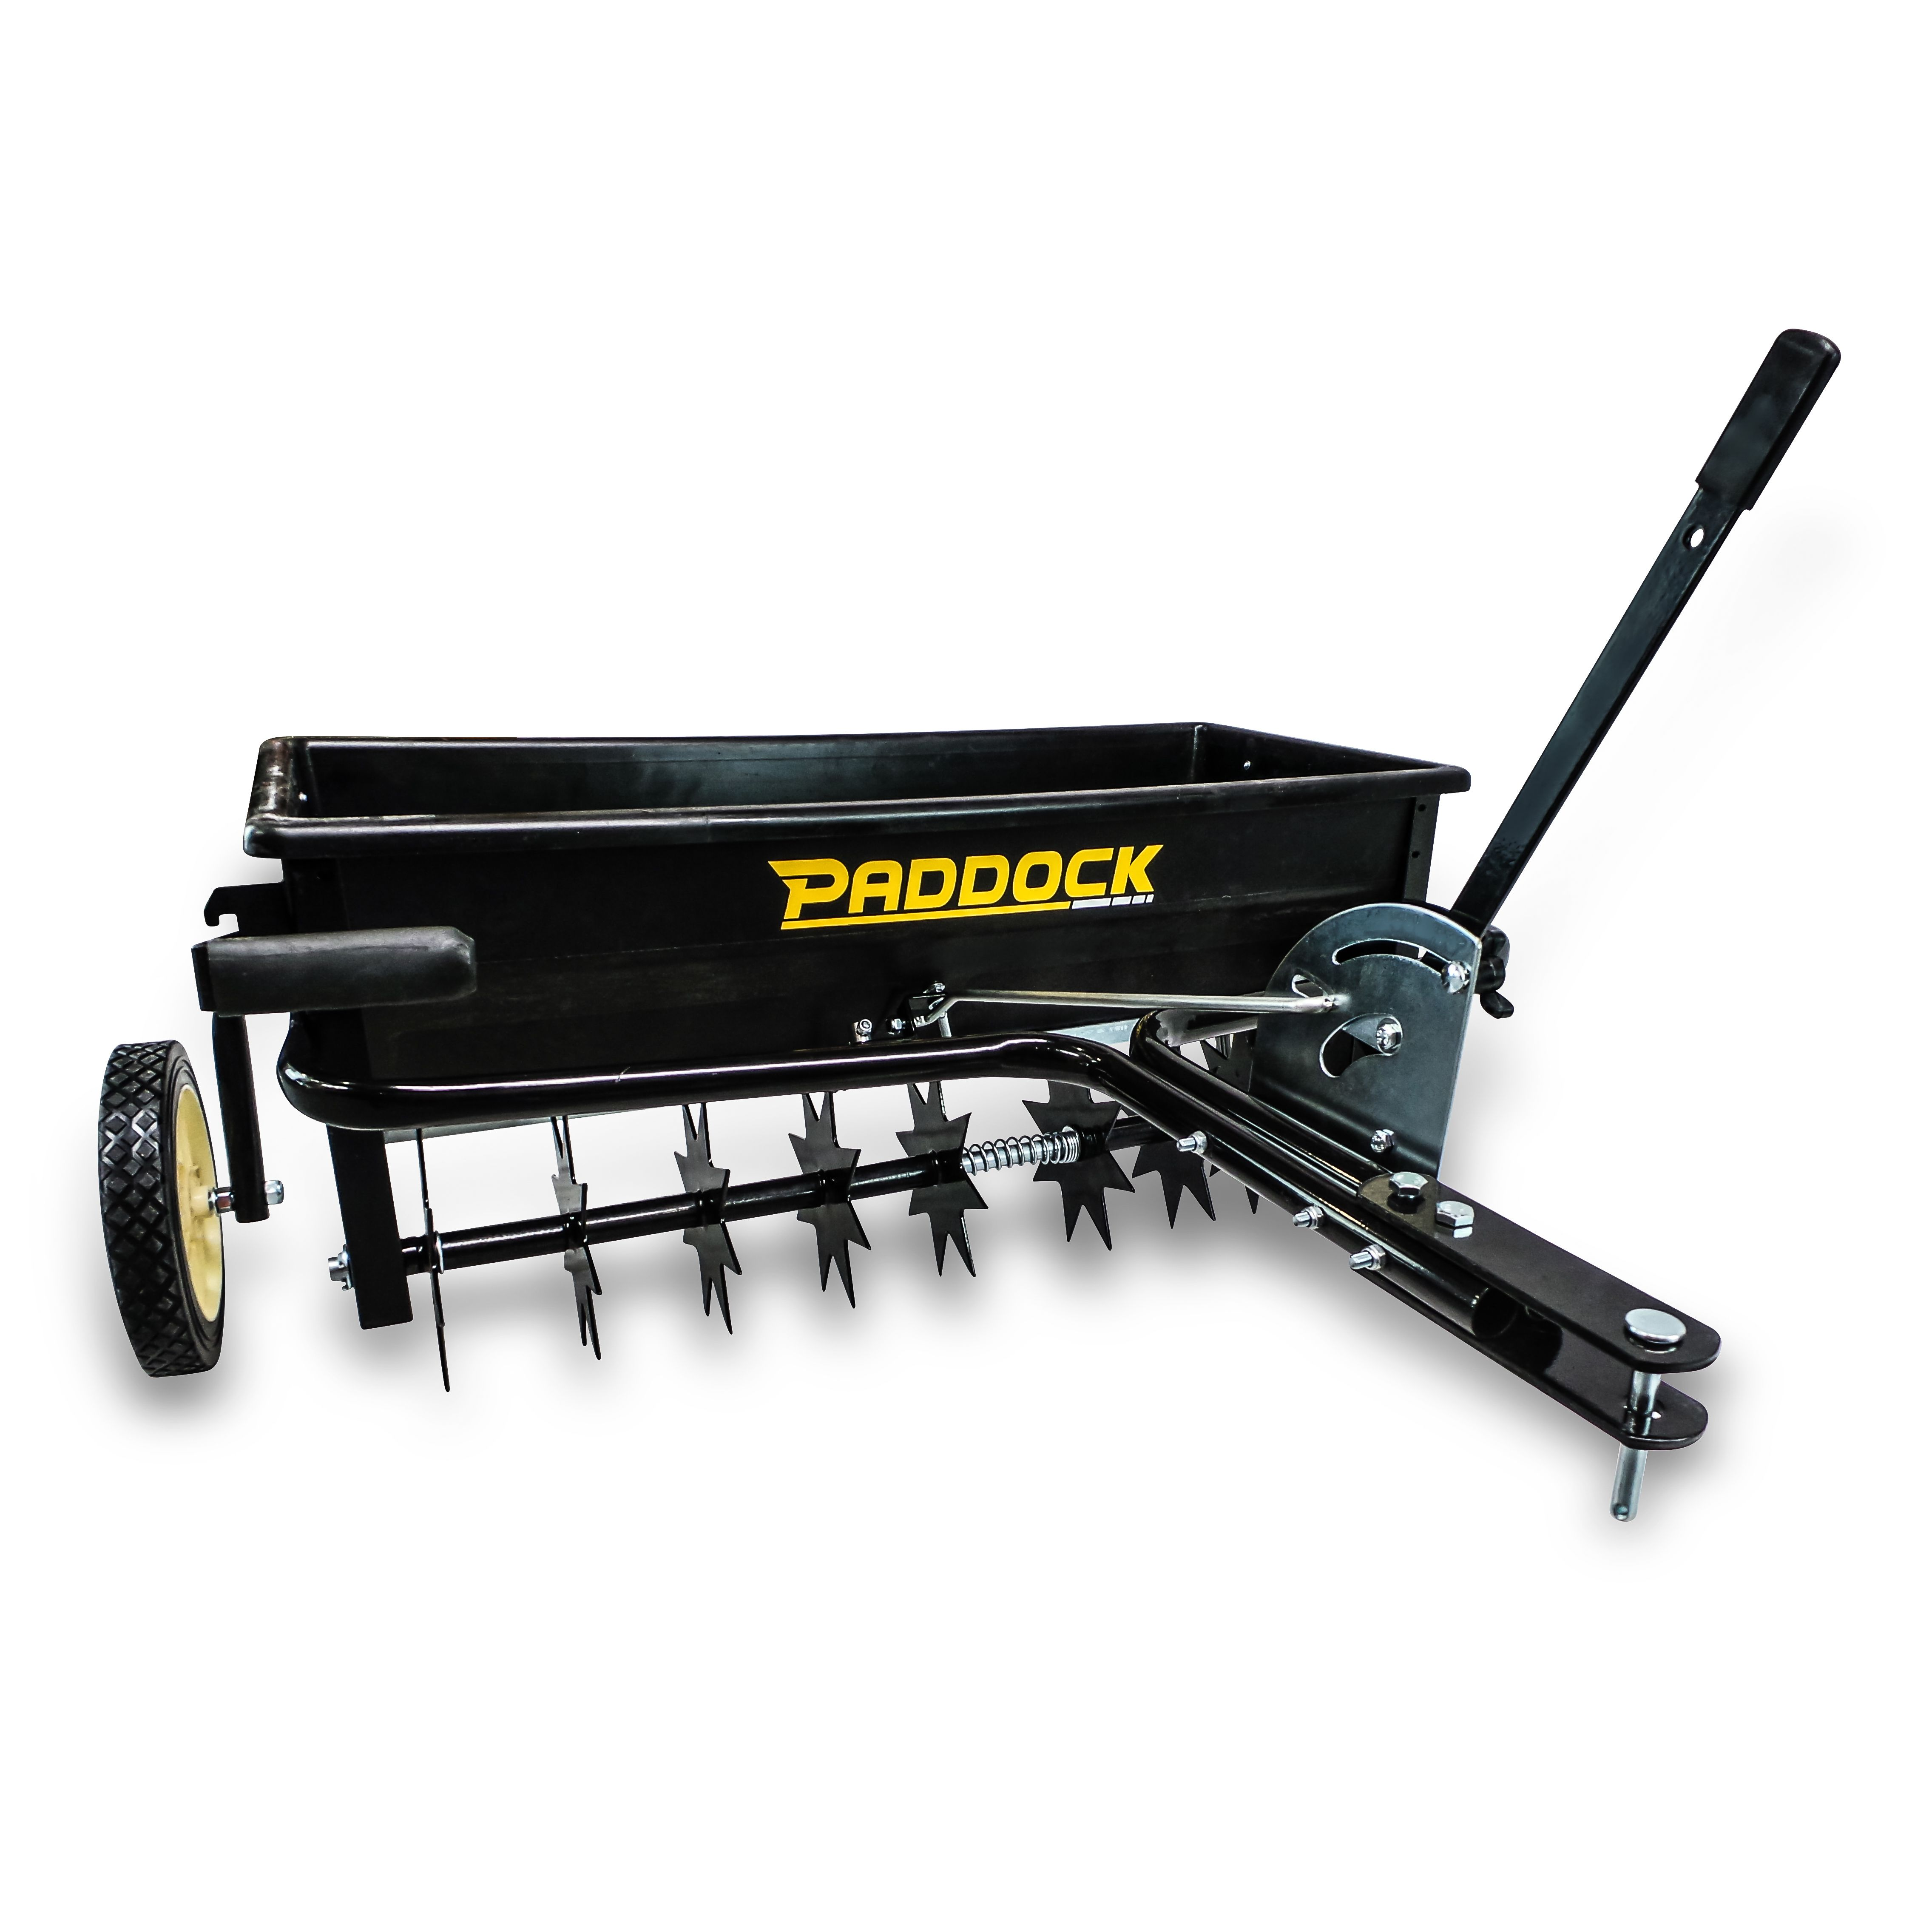 Drop Seeder Spreader Riding Lawn Mowers Aerator Riding Mower